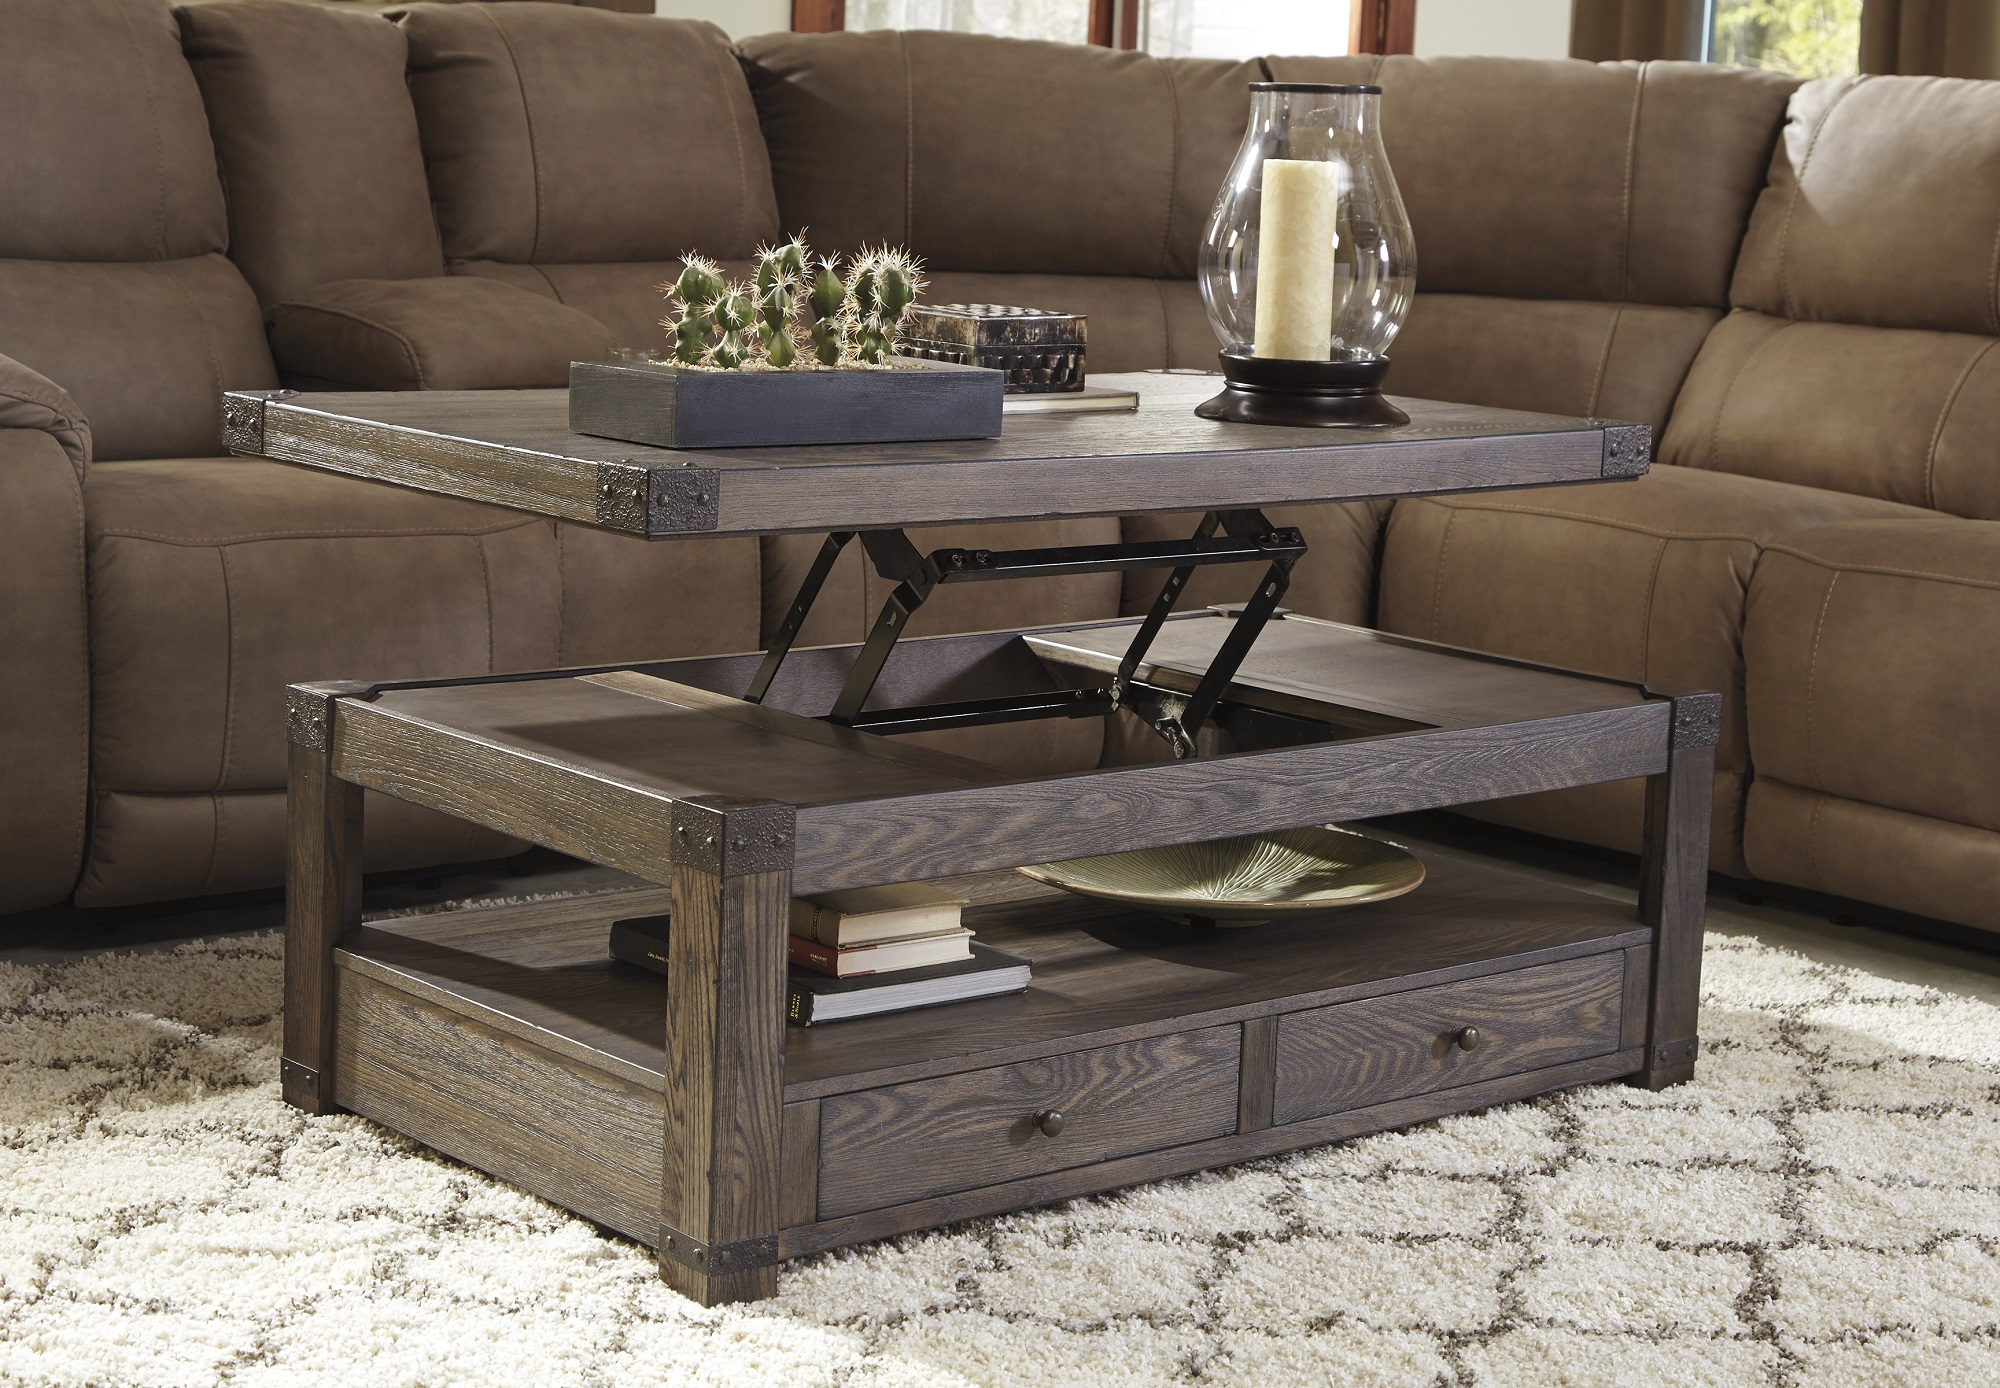 Burladen Lift Top Coffee Table Image